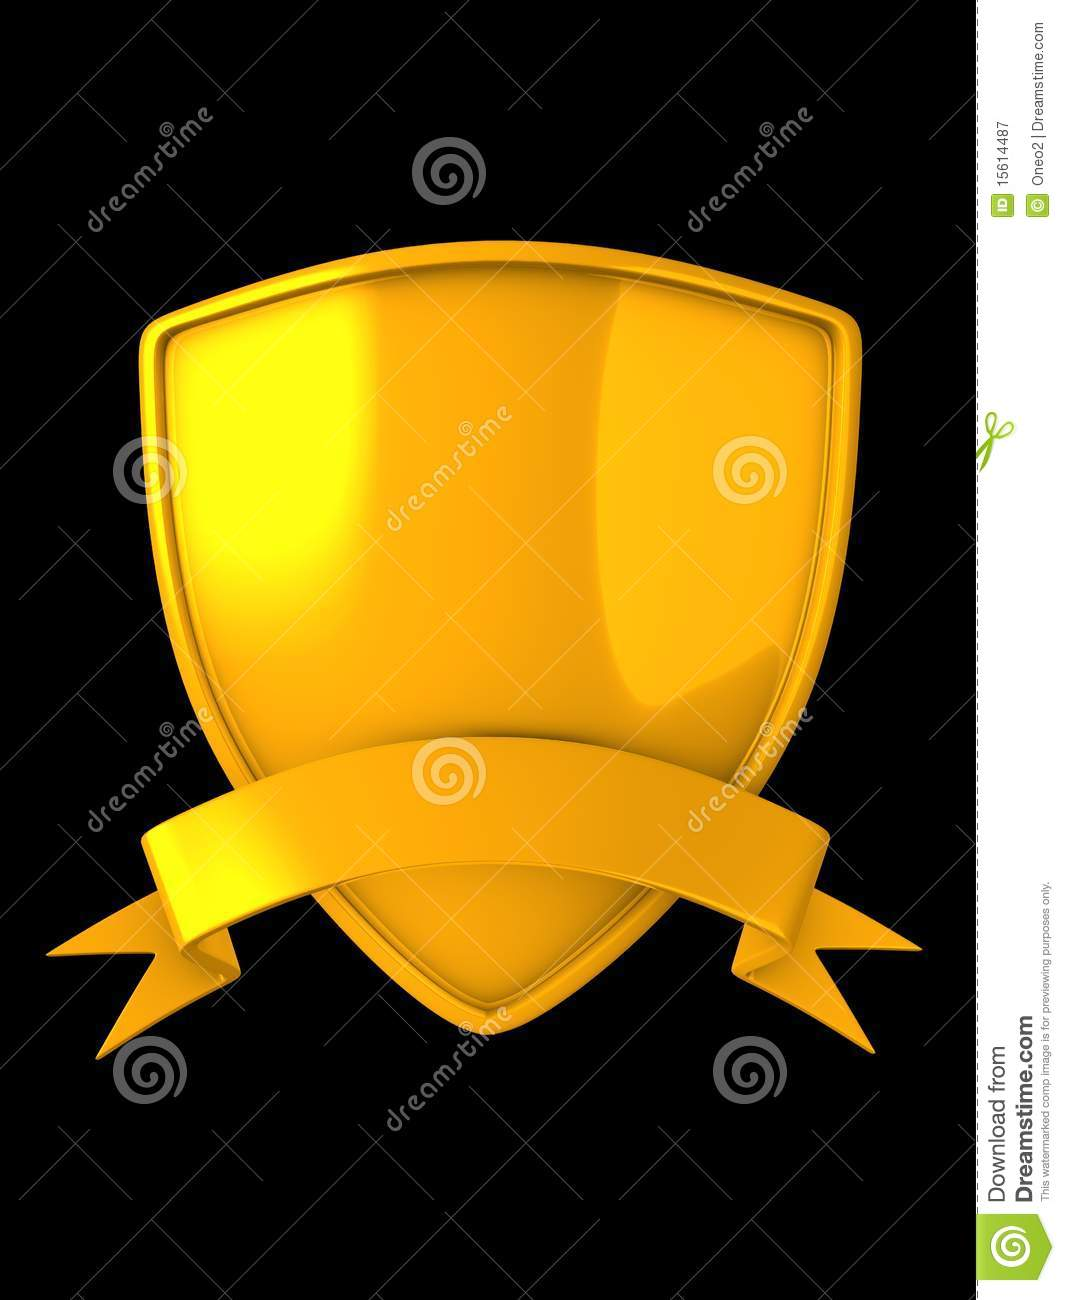 Gold Shield Badge Royalty Free Stock Photography - Image: 15614487